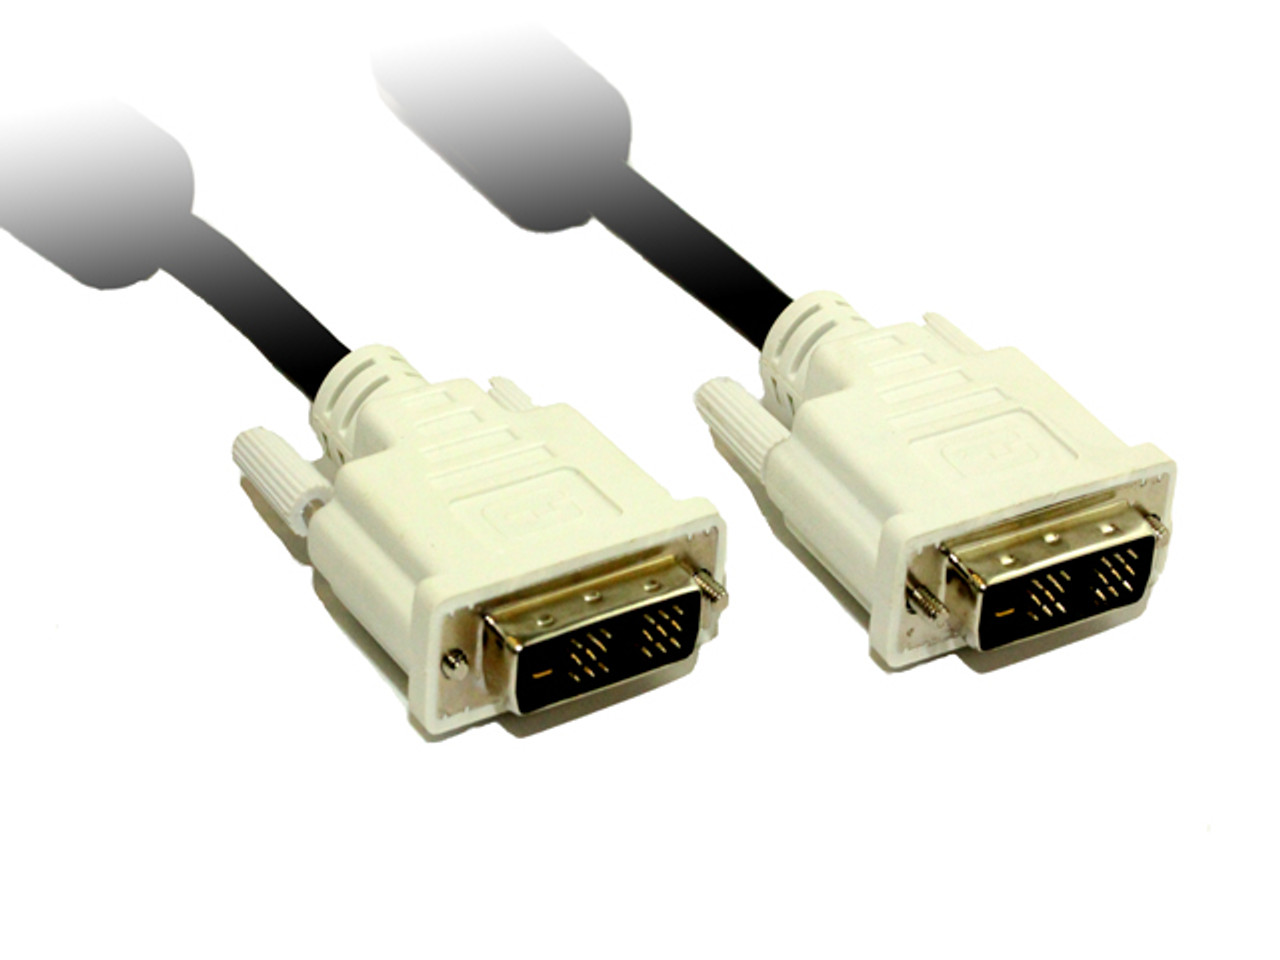 Product image for 2M DVI Digital Single Link Cable | CX Computer Superstore